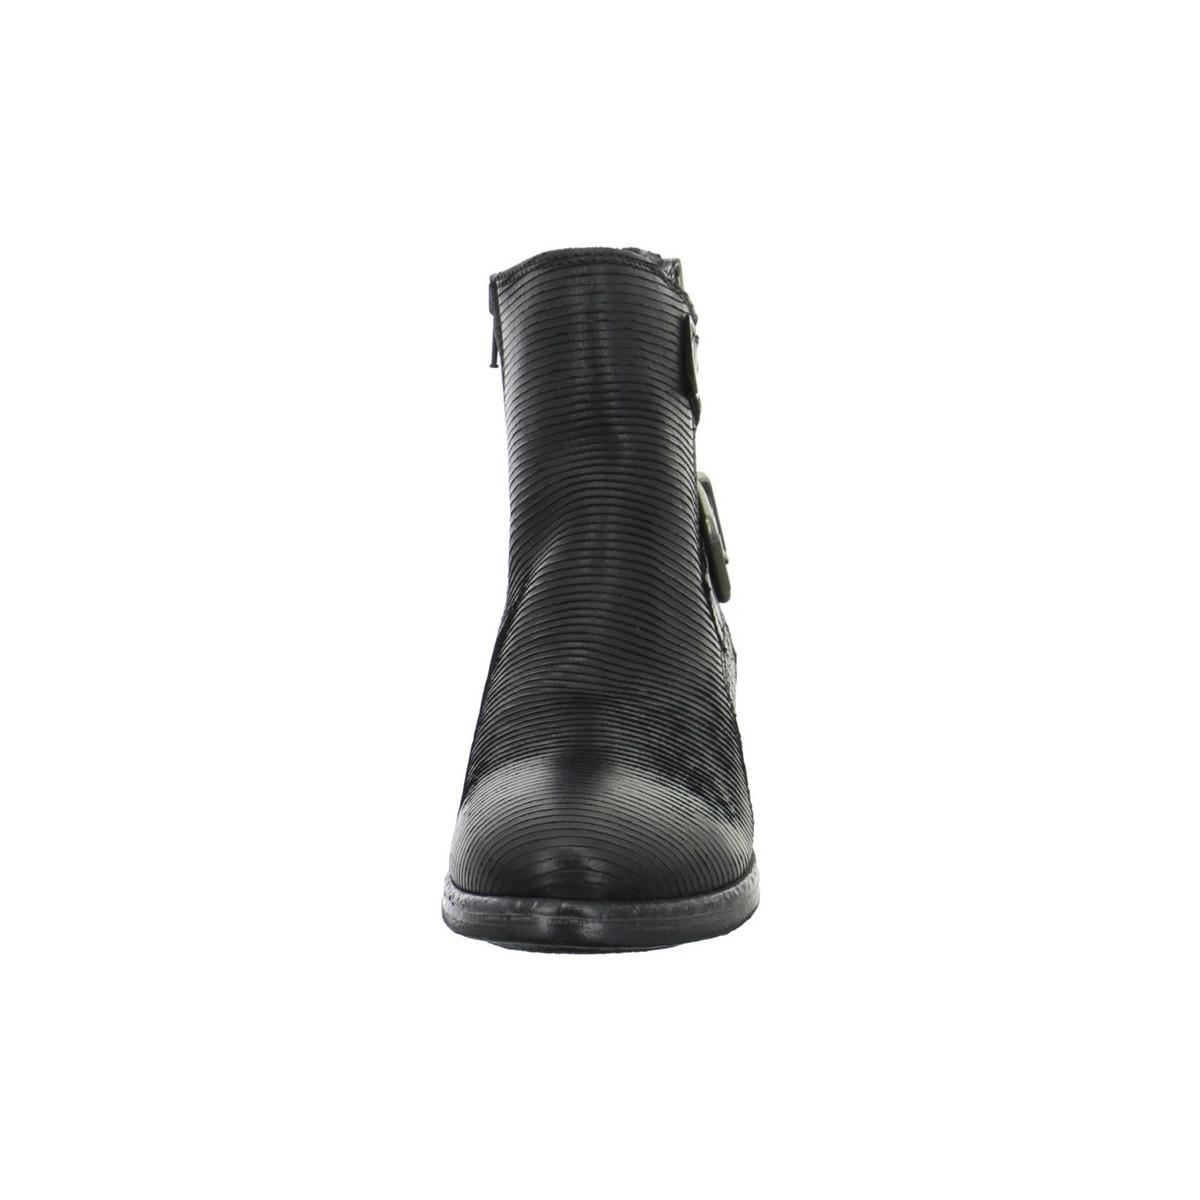 a3355f3bd52 Clarks Sicilly Dove Women's Low Ankle Boots In Black in Black - Lyst